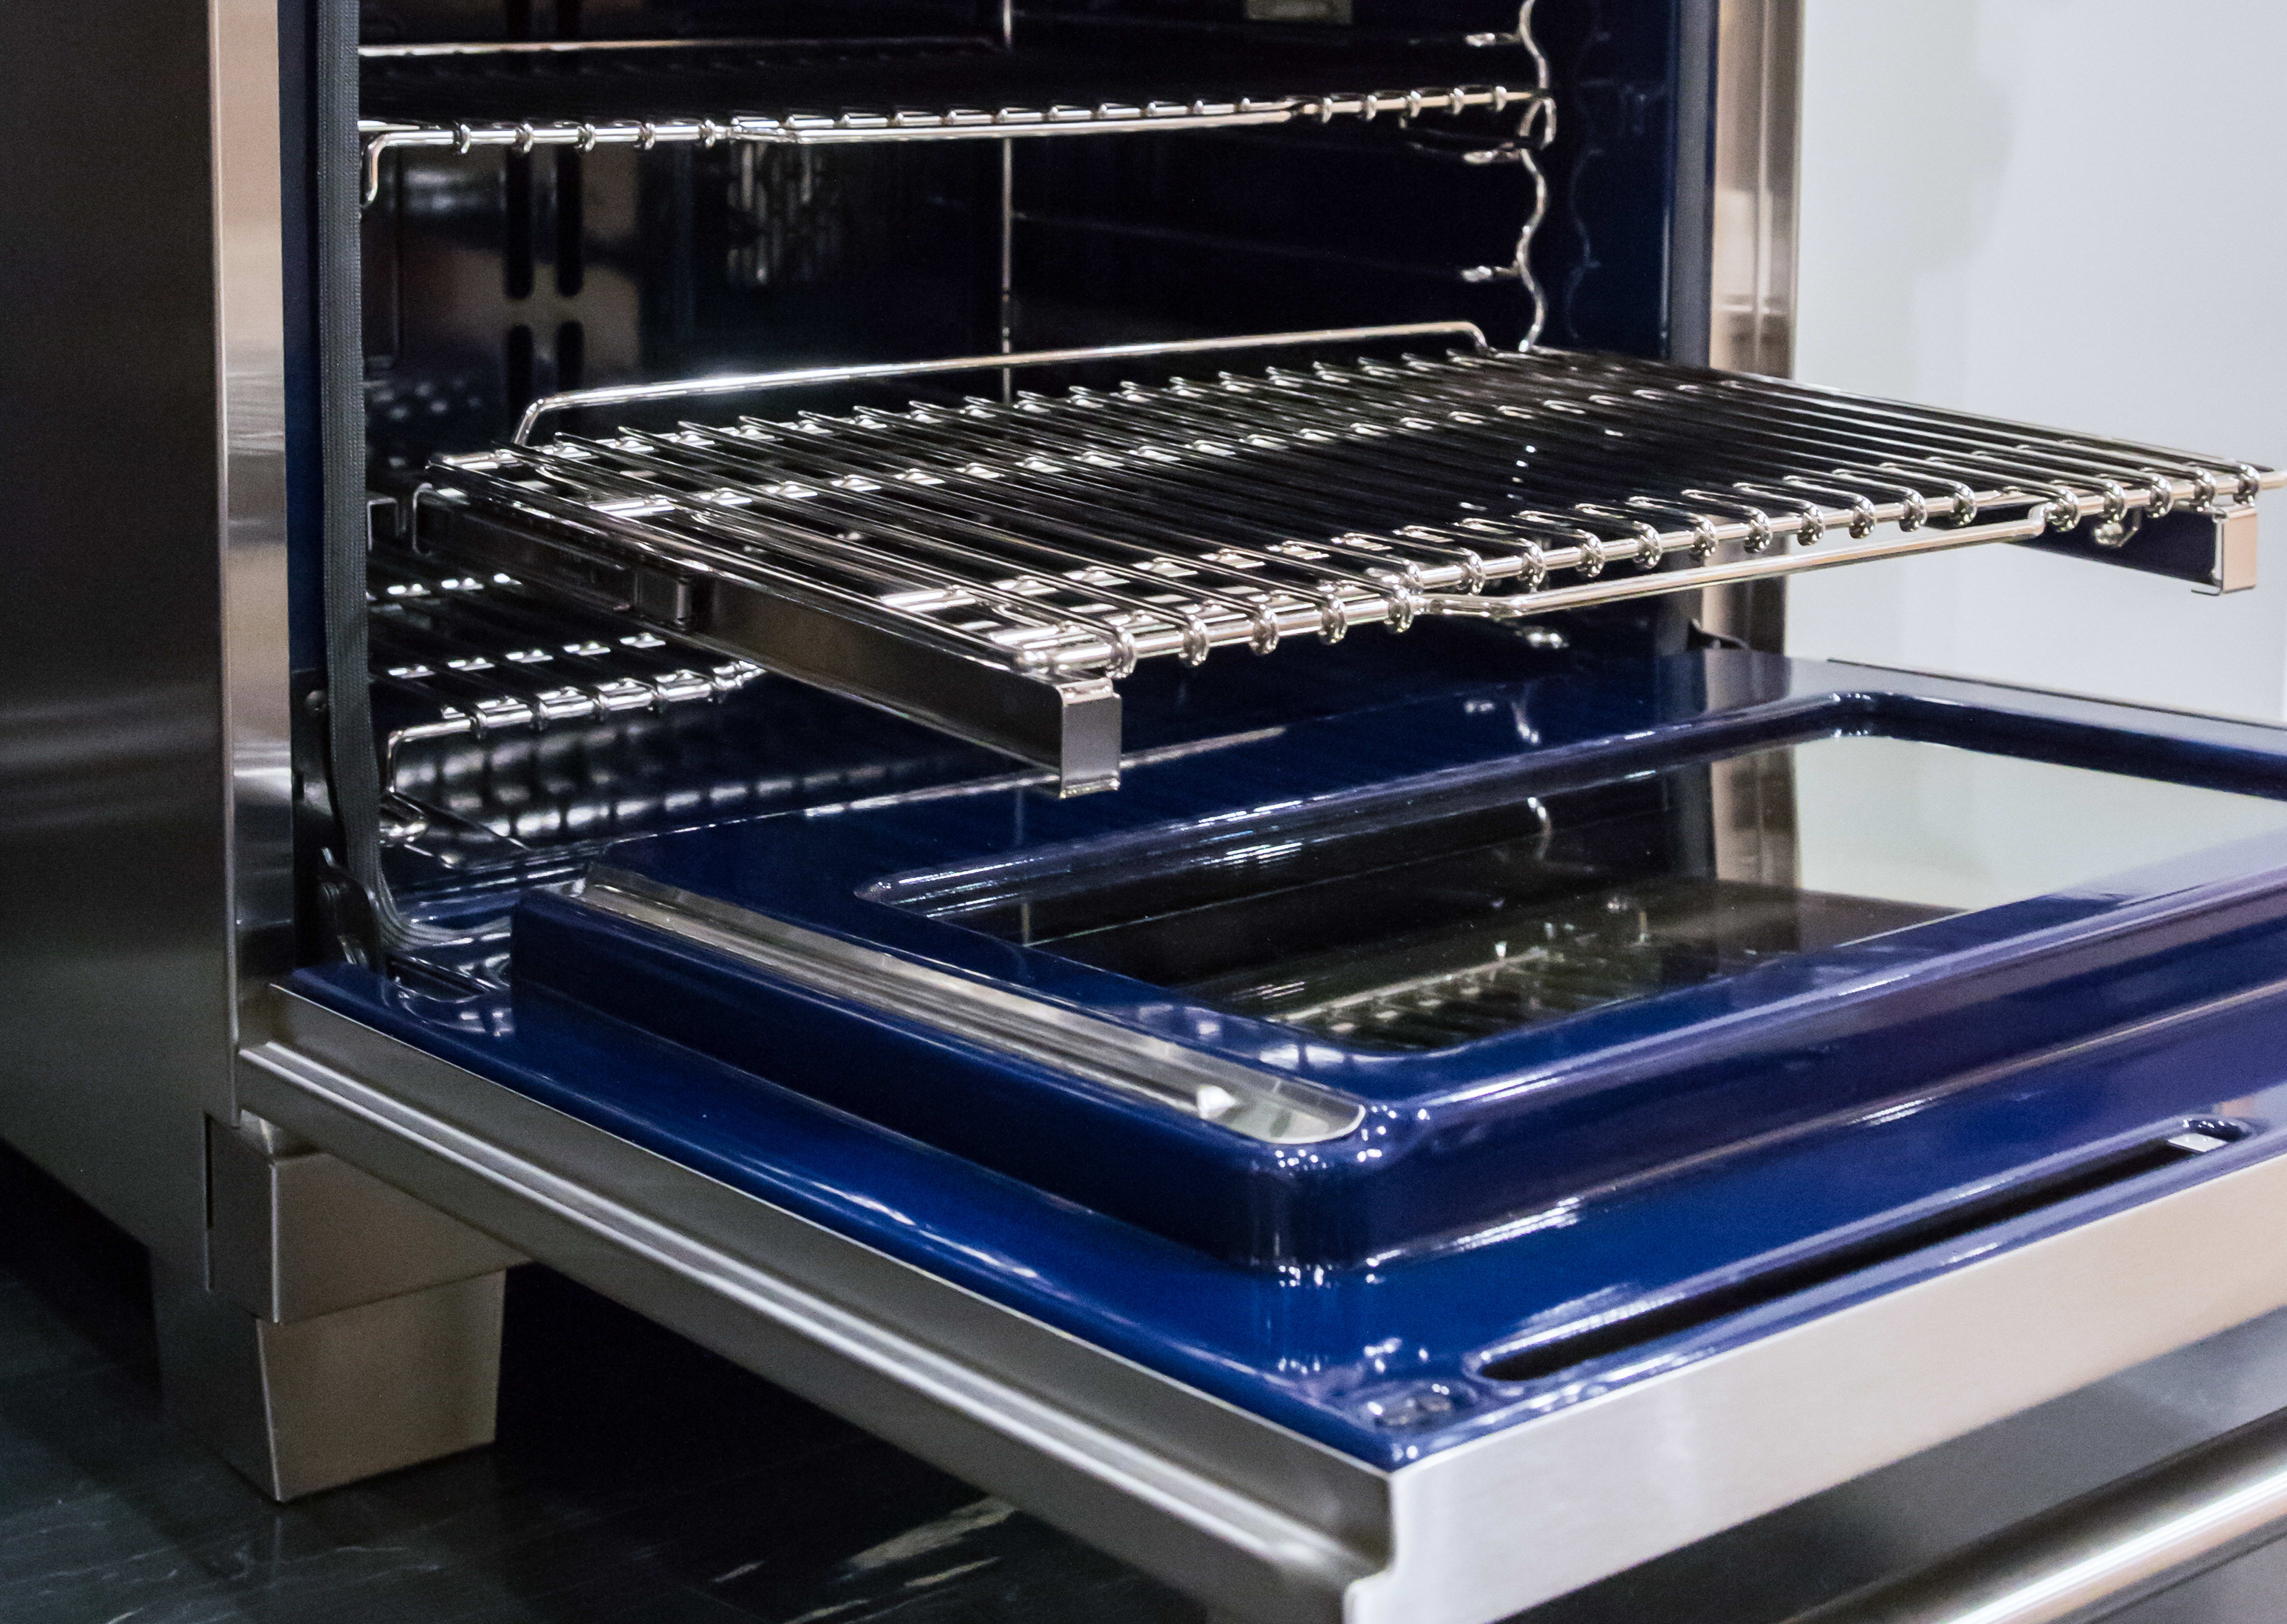 Oven cavity with gliding rack